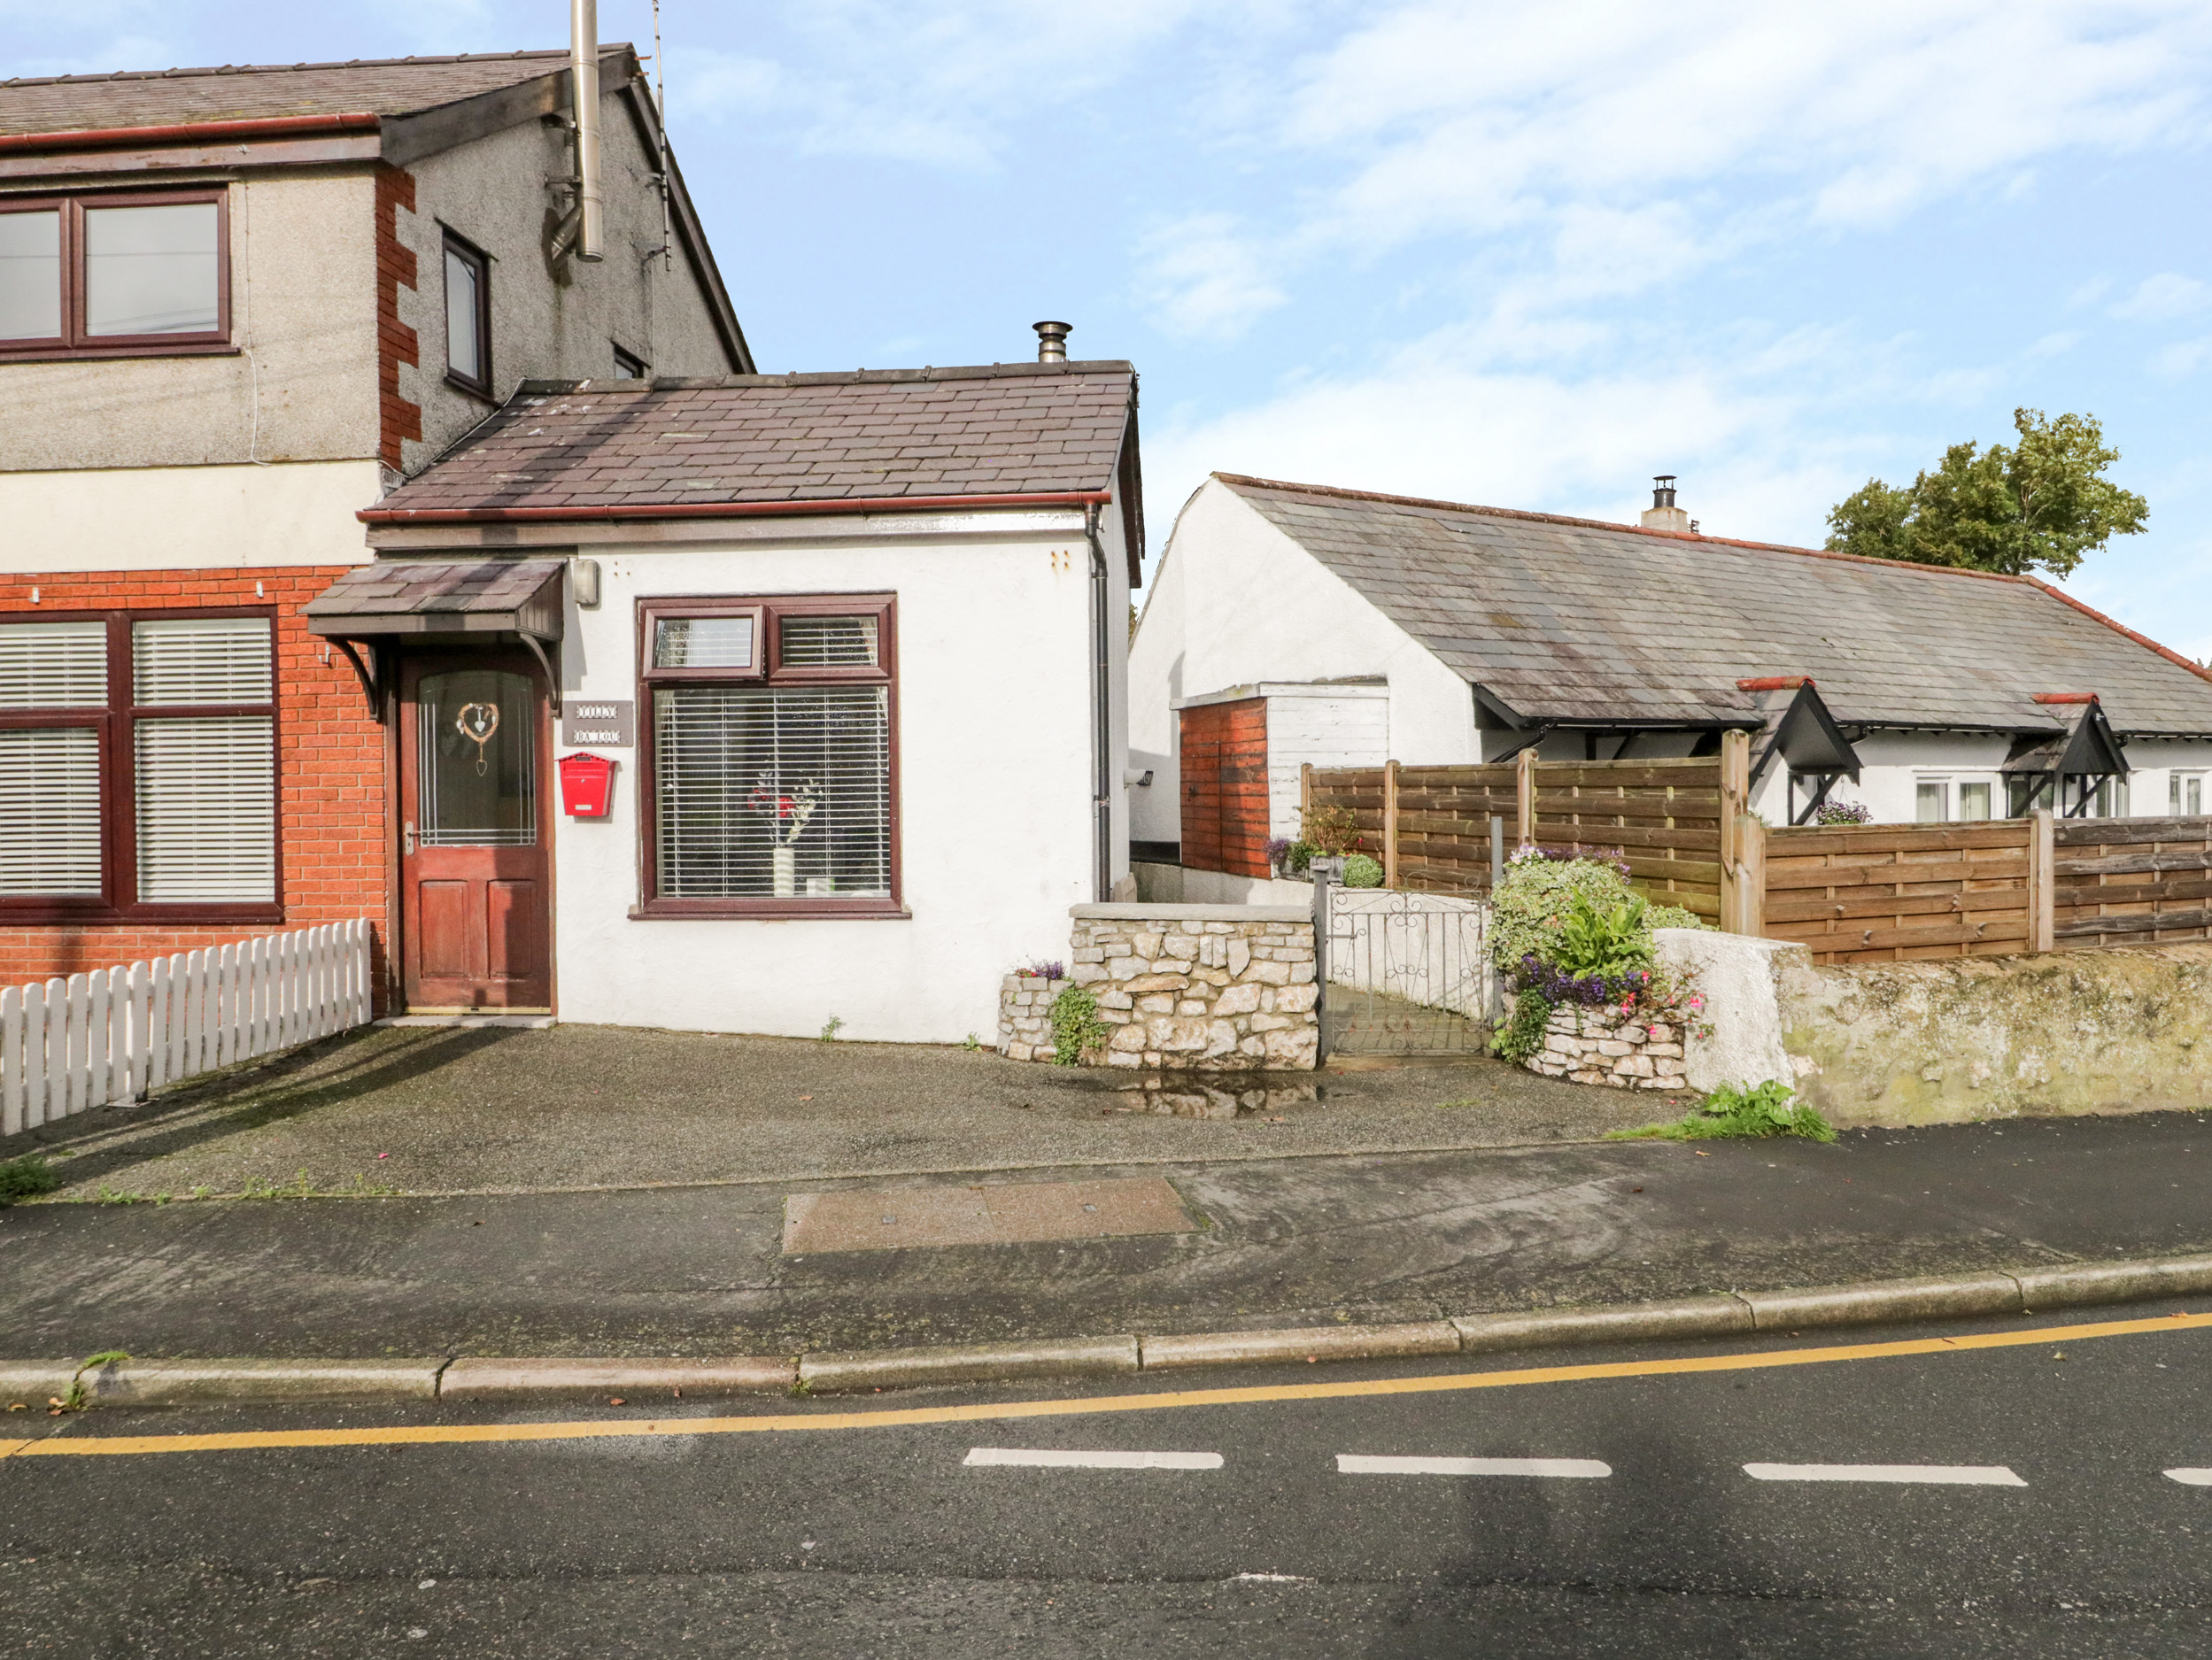 1 bedroom Cottage for rent in Moelfre